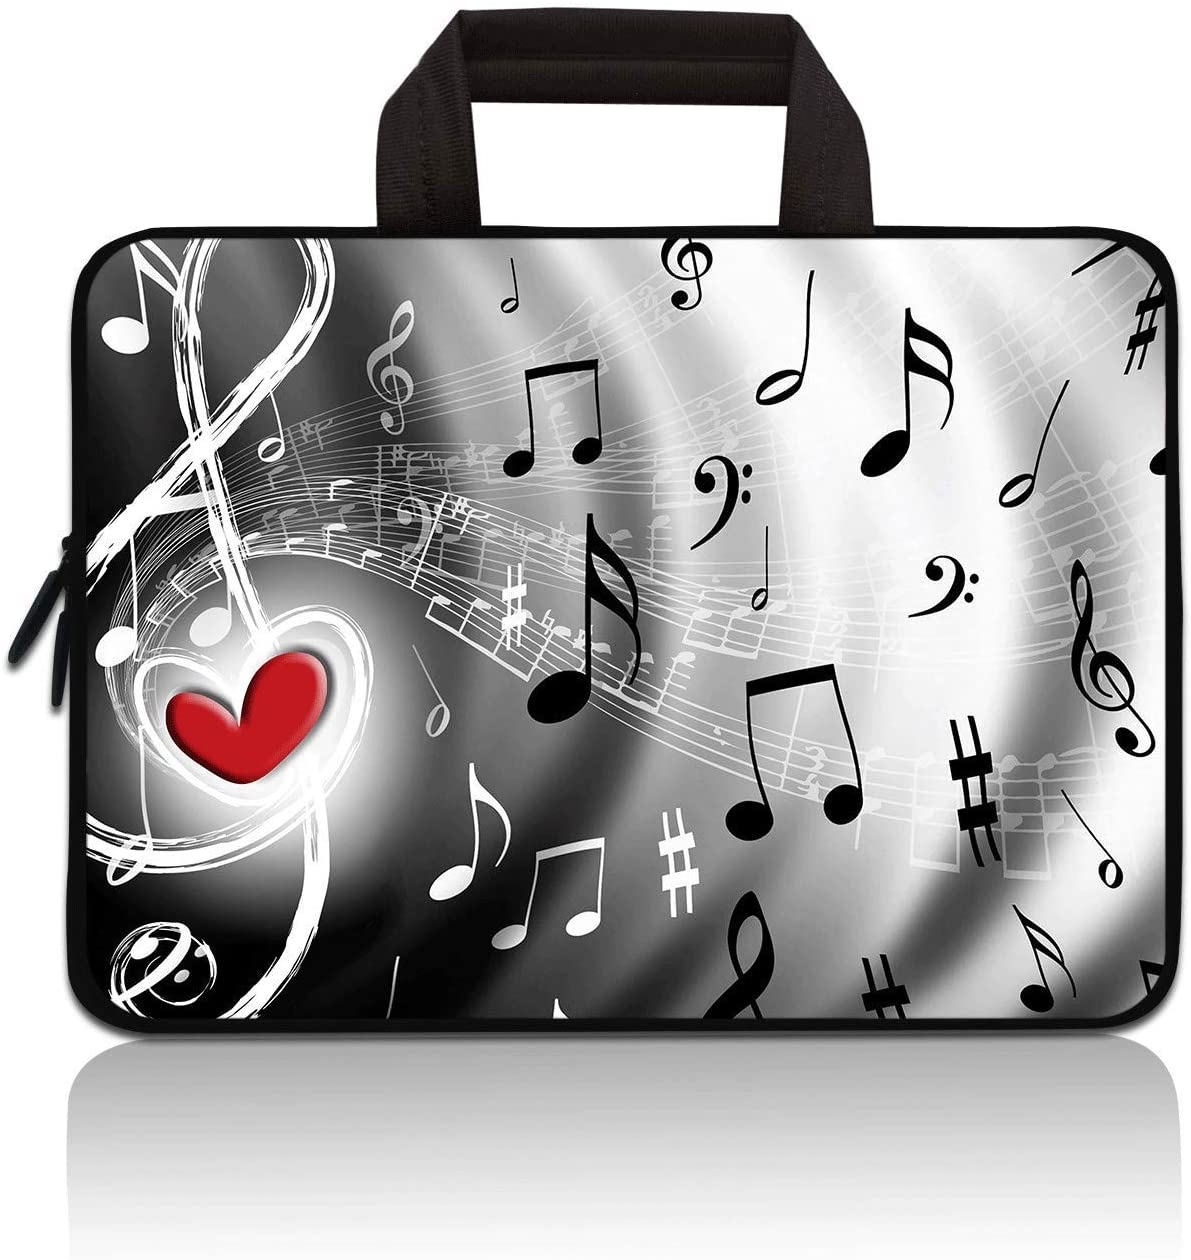 HYUTOTA 11 11.6 12 12.1 12.5 inch Laptop Carrying Bag Chromebook Case Notebook Ultrabook Bag Tablet Cover Neoprene Sleeve Fit Apple MacBook Air Samsung Google Acer HP DELL Lenovo Asus(Musical Note)